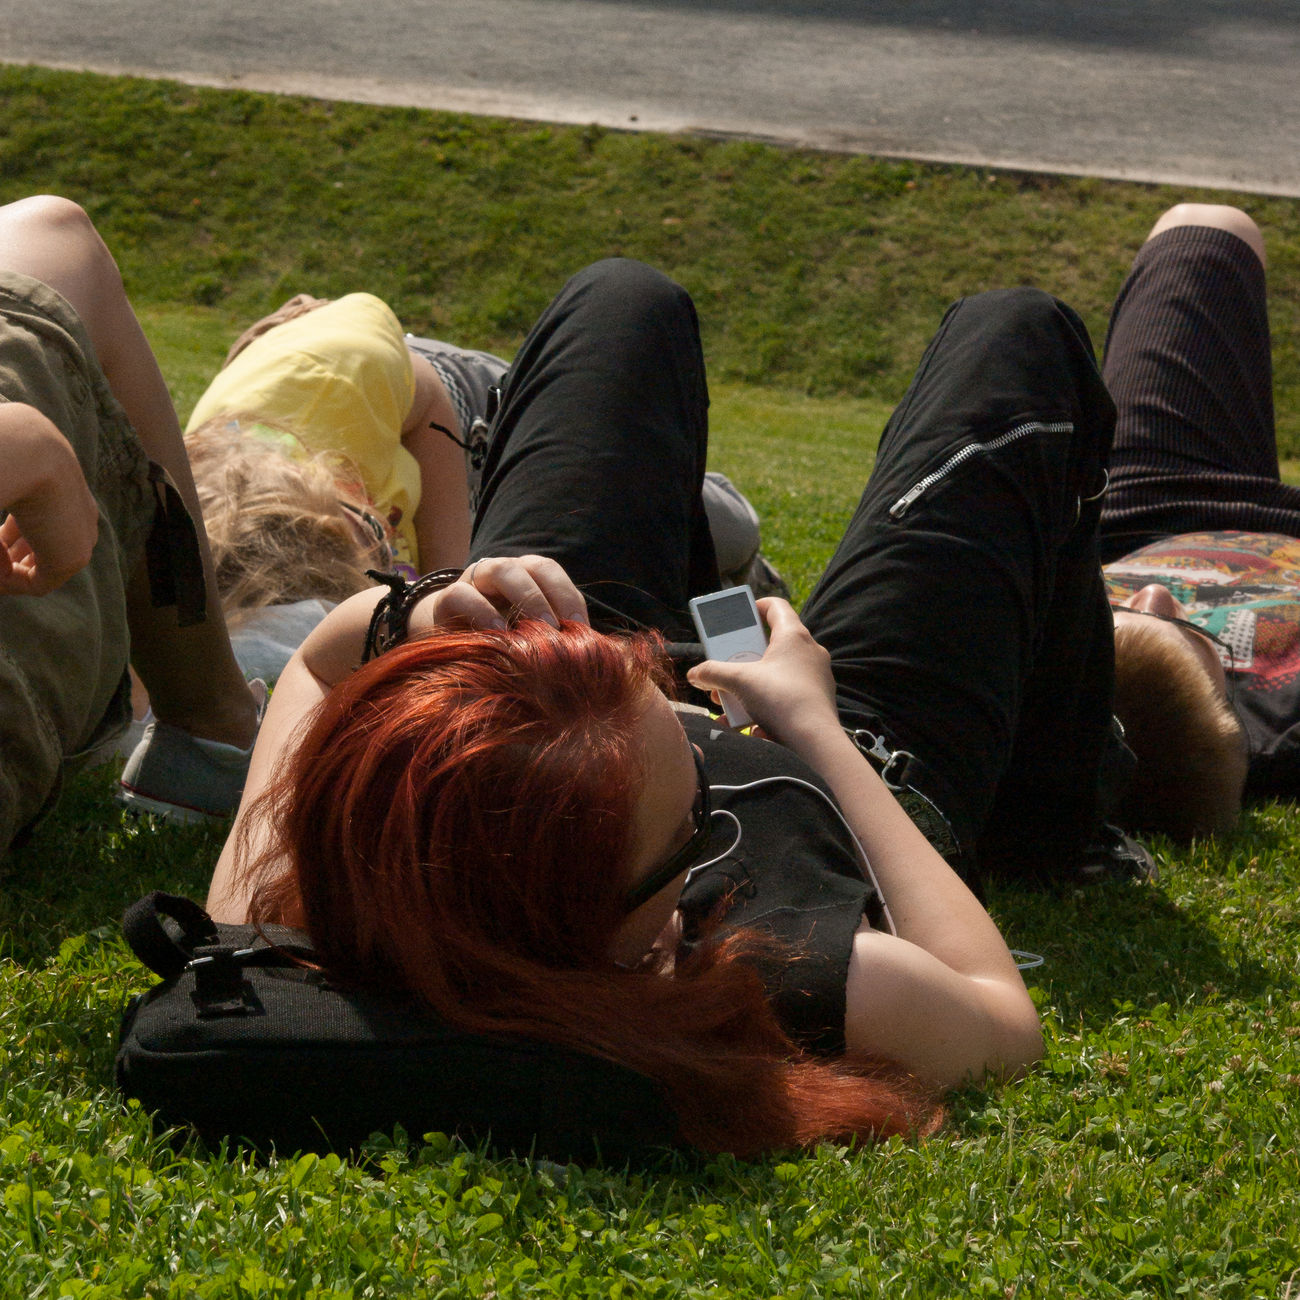 2008 Cultures Day Grass Horizontal Lifestyles Lying Down Outdoors People Person Red Hair Tourist Destination Tourists Unrecognizable People Young Adult